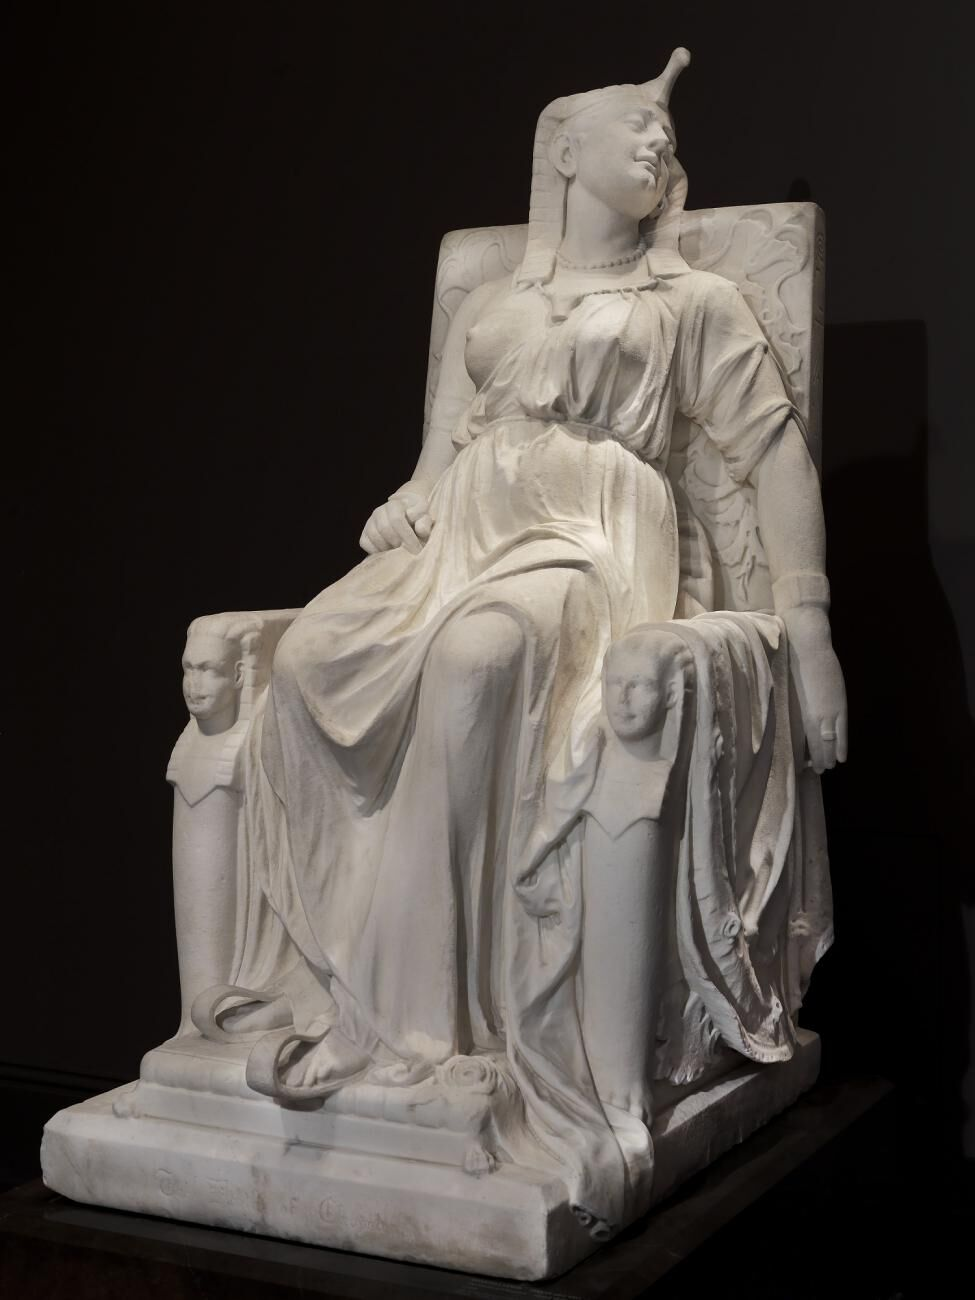 Edmonia Lewis, The Death of Cleopatra, 1876. Courtesy of the Smithsonian American Art Museum.